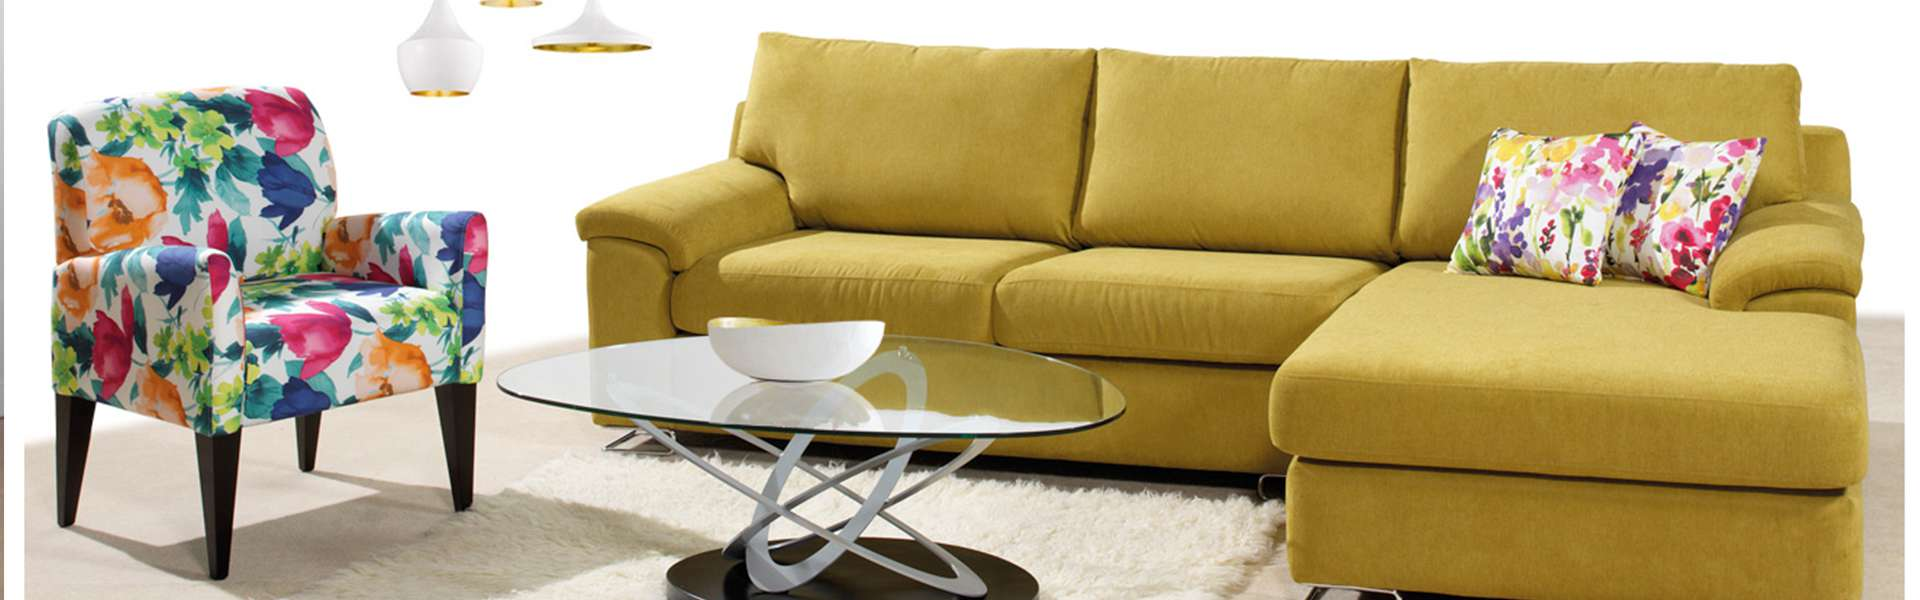 bella-sofa-with-serin-chair-nowra